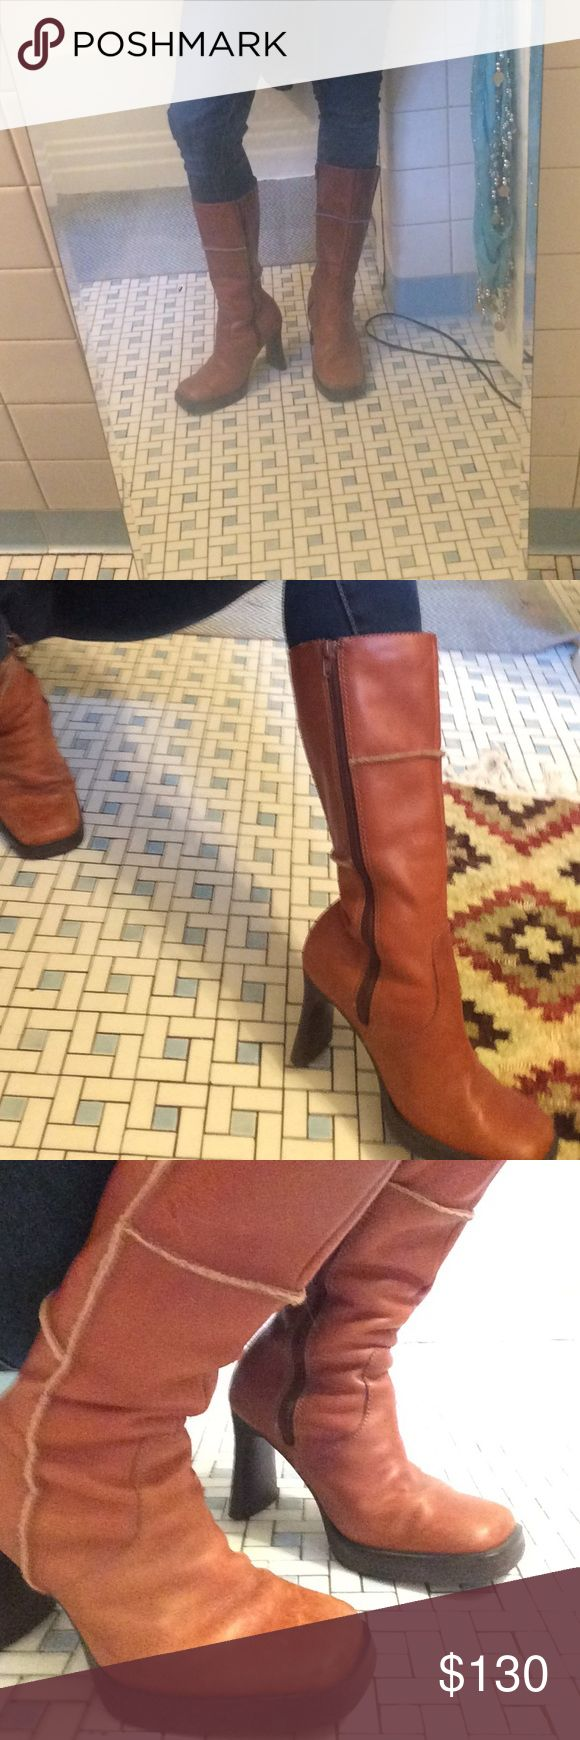 Seychelles Boots Very 70s feel Seychelles boots. Size 6- very expensive boot and I'm not sure if I want to sell... but still open to offers Seychelles Shoes Heeled Boots